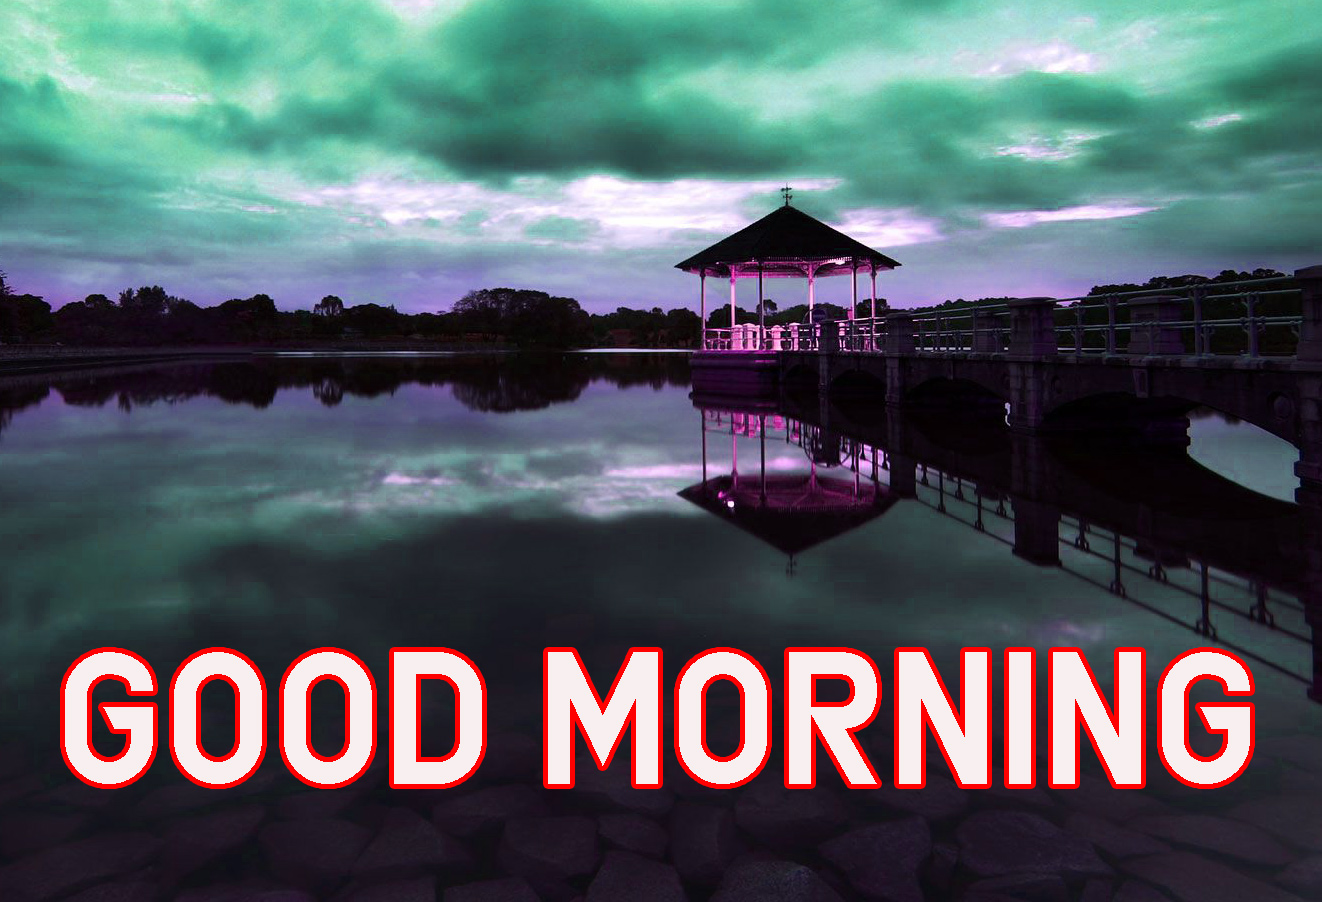 GOOD MORNING IMAGE PICTURES PHOTO HD FOR WHATSAPP